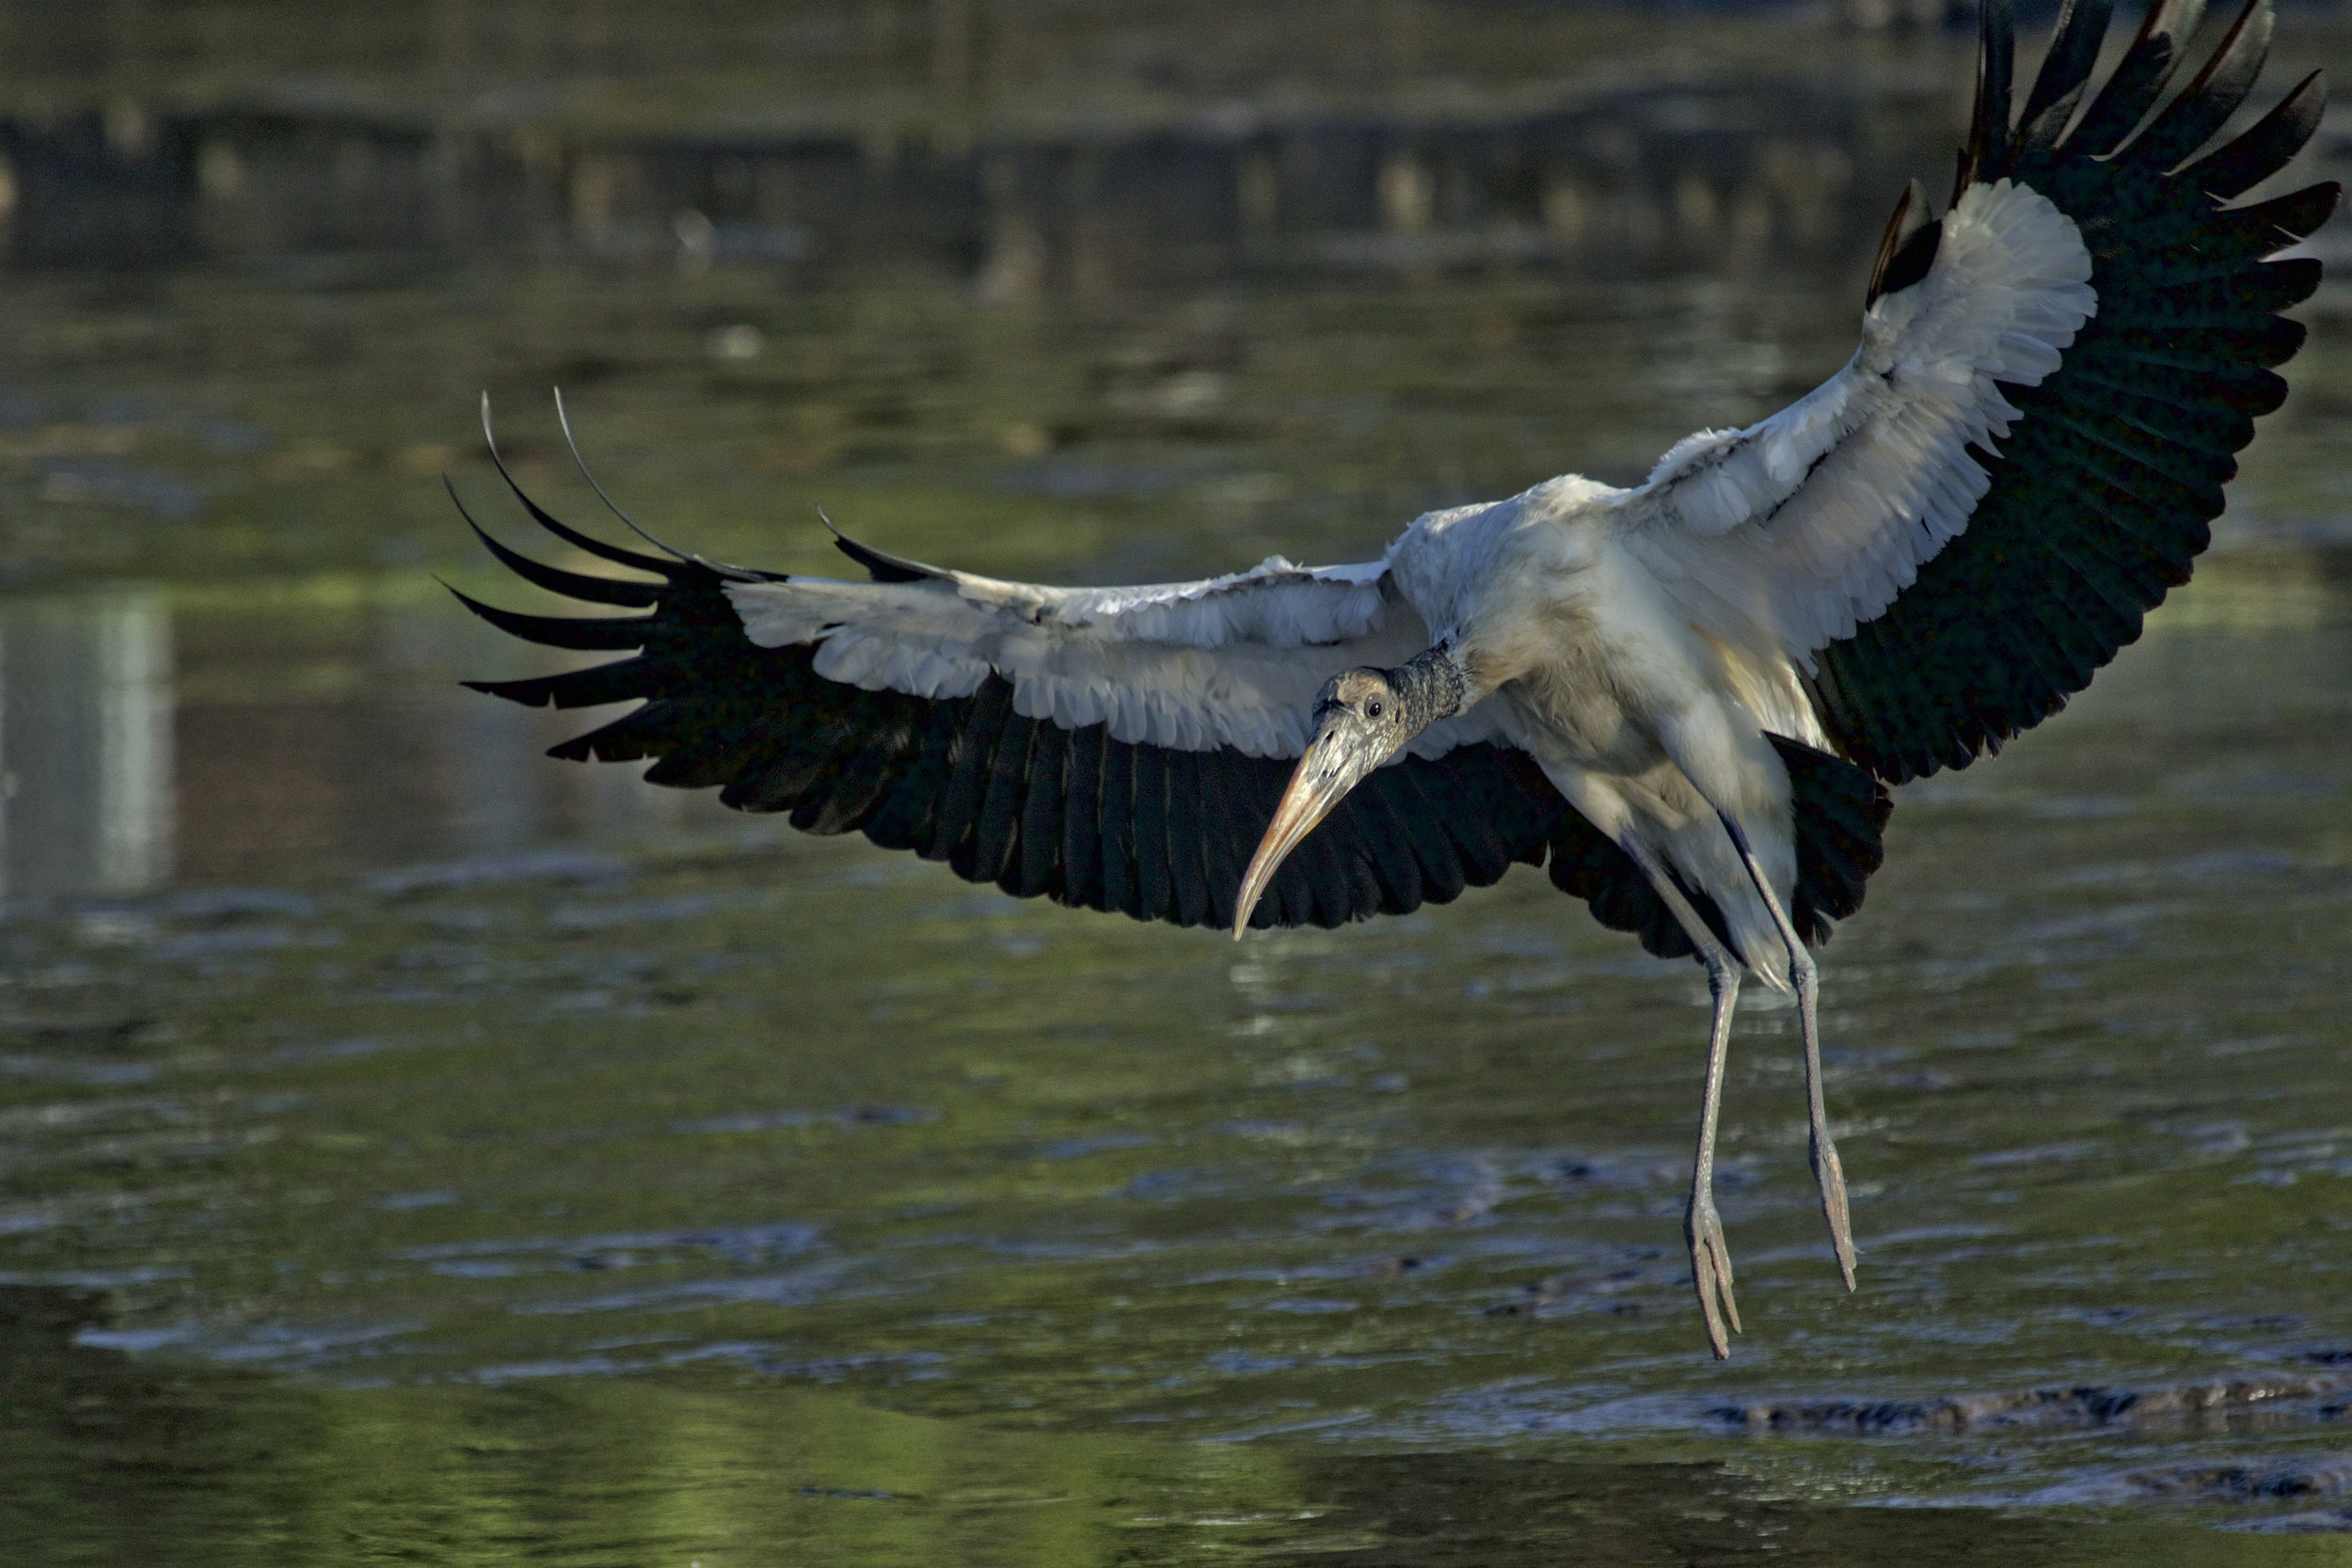 A not so young looking Wood Stork also lands in front of me in the muck..